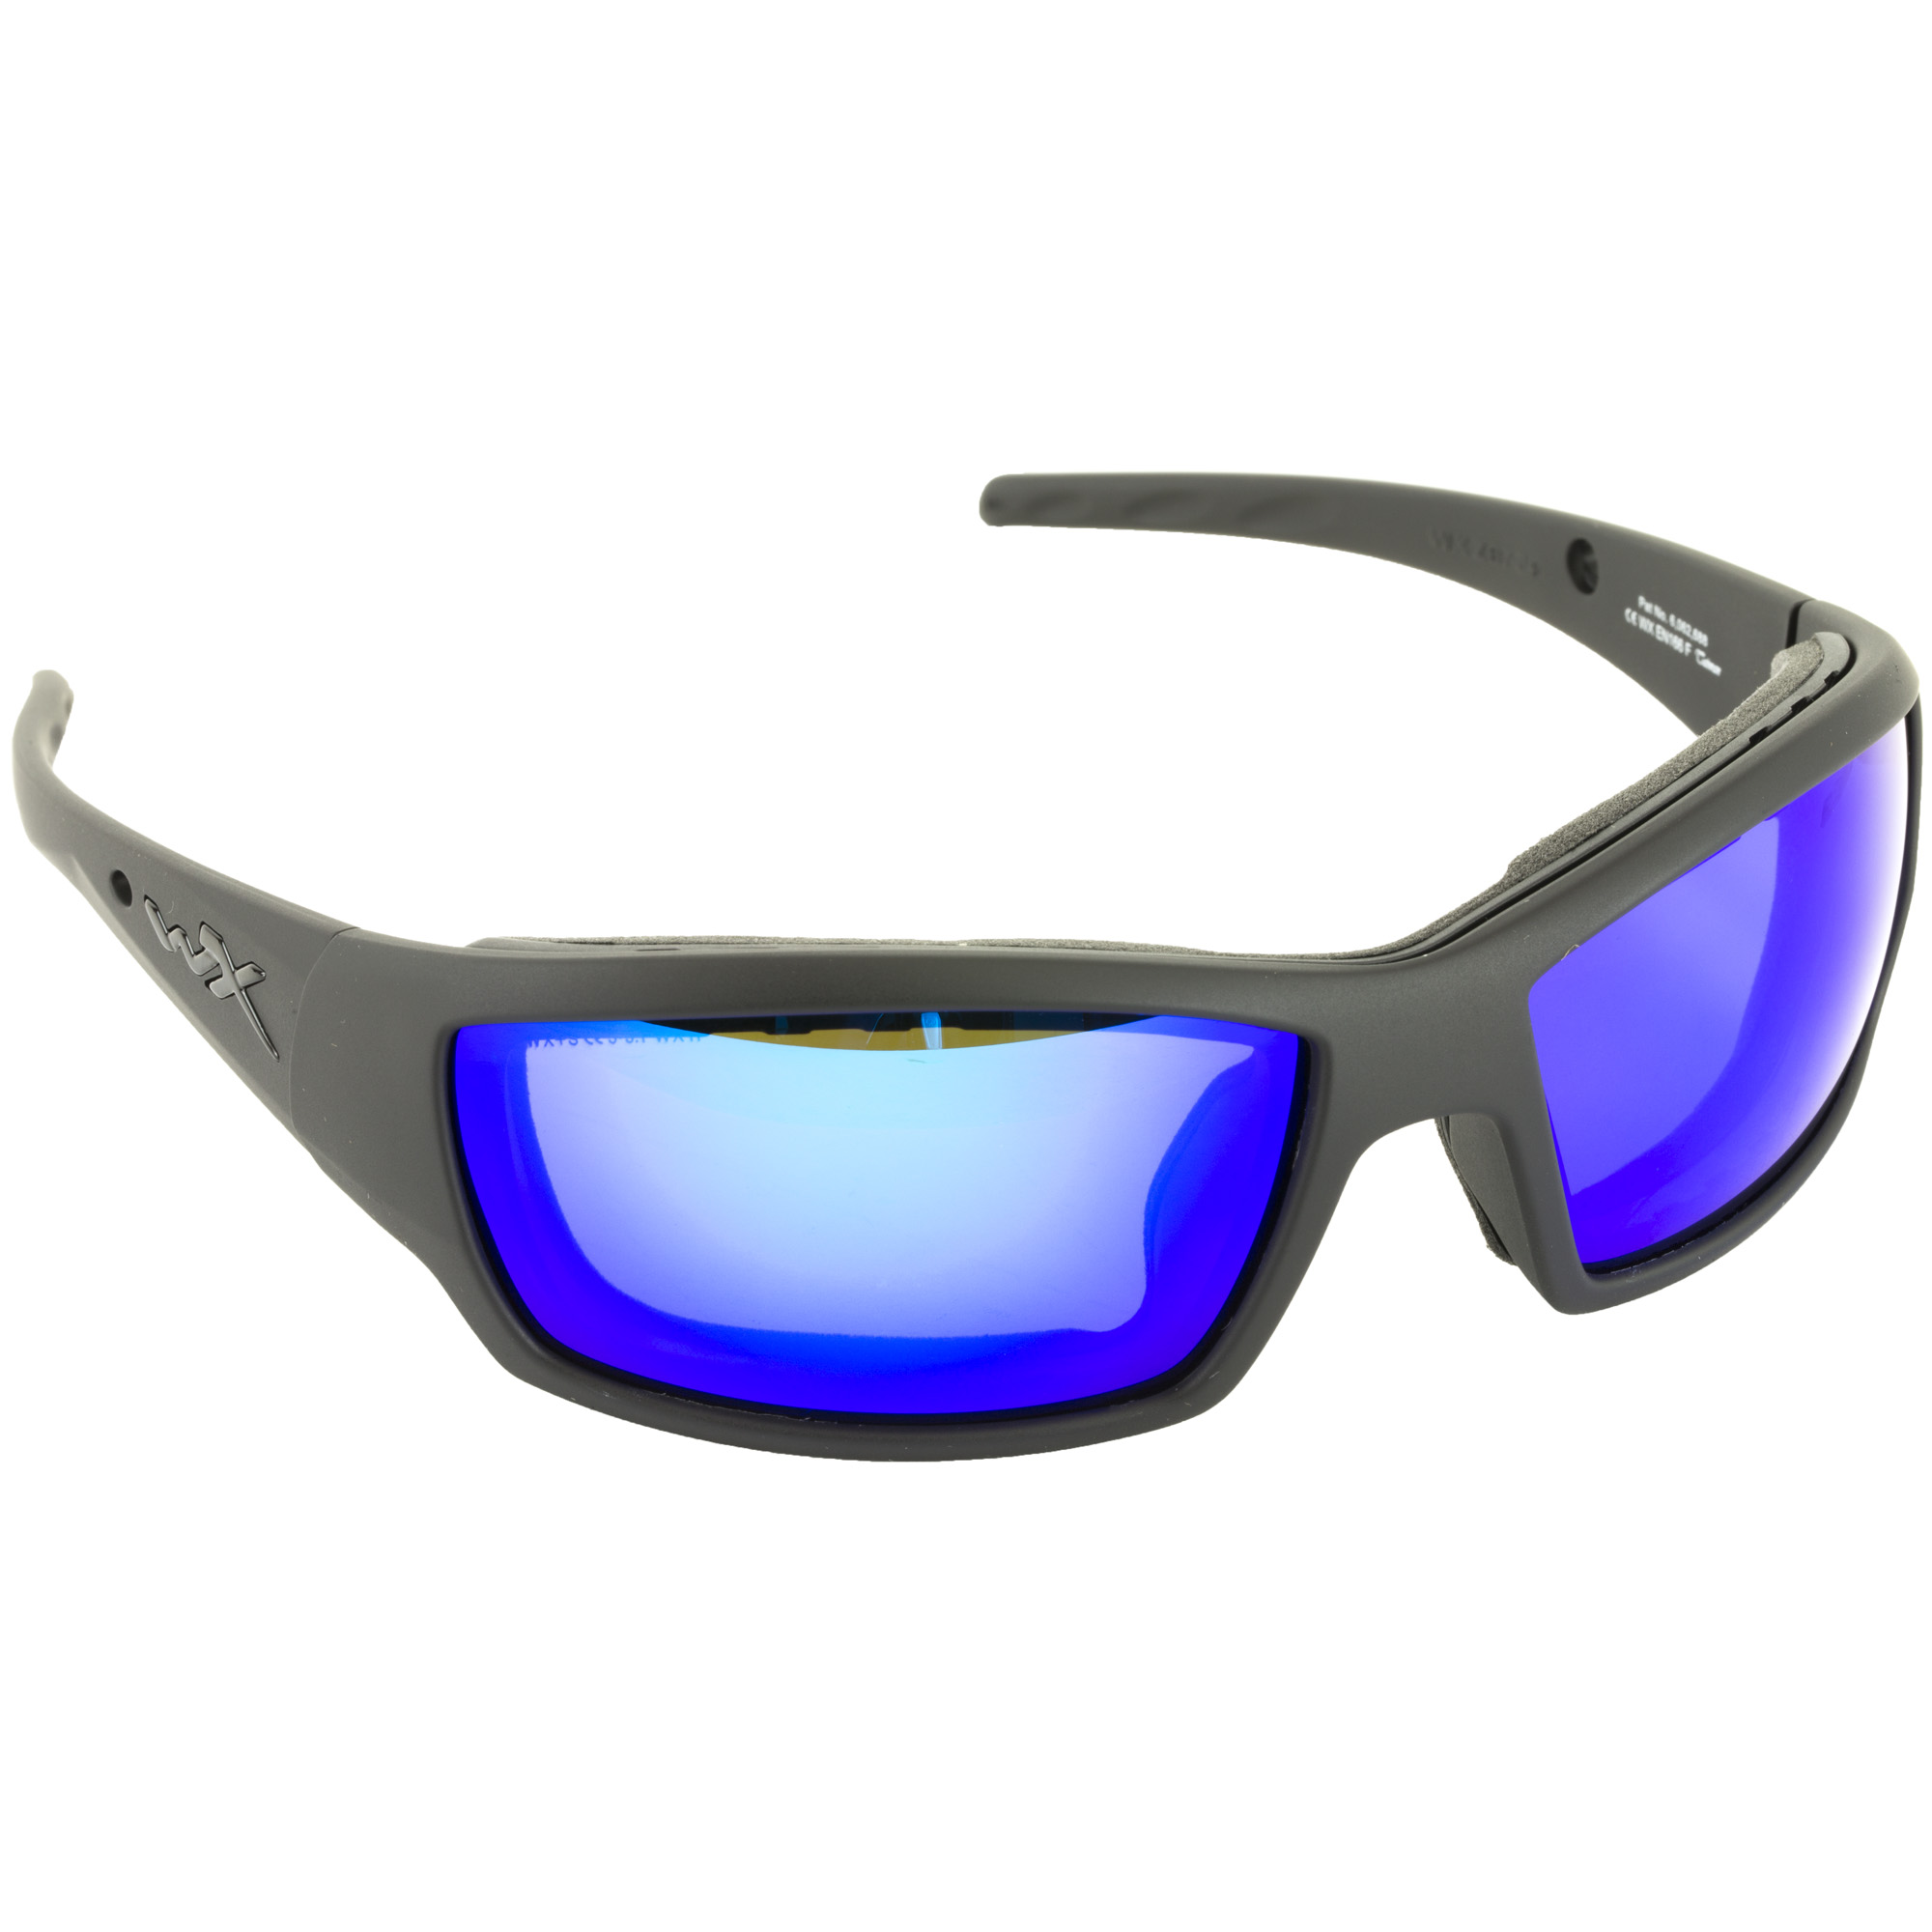 f05990df750 Wiley X Tide Polarized Mirror Sunglasses – Blue Mirror Lens – Gloss Black  Frame CCTID09